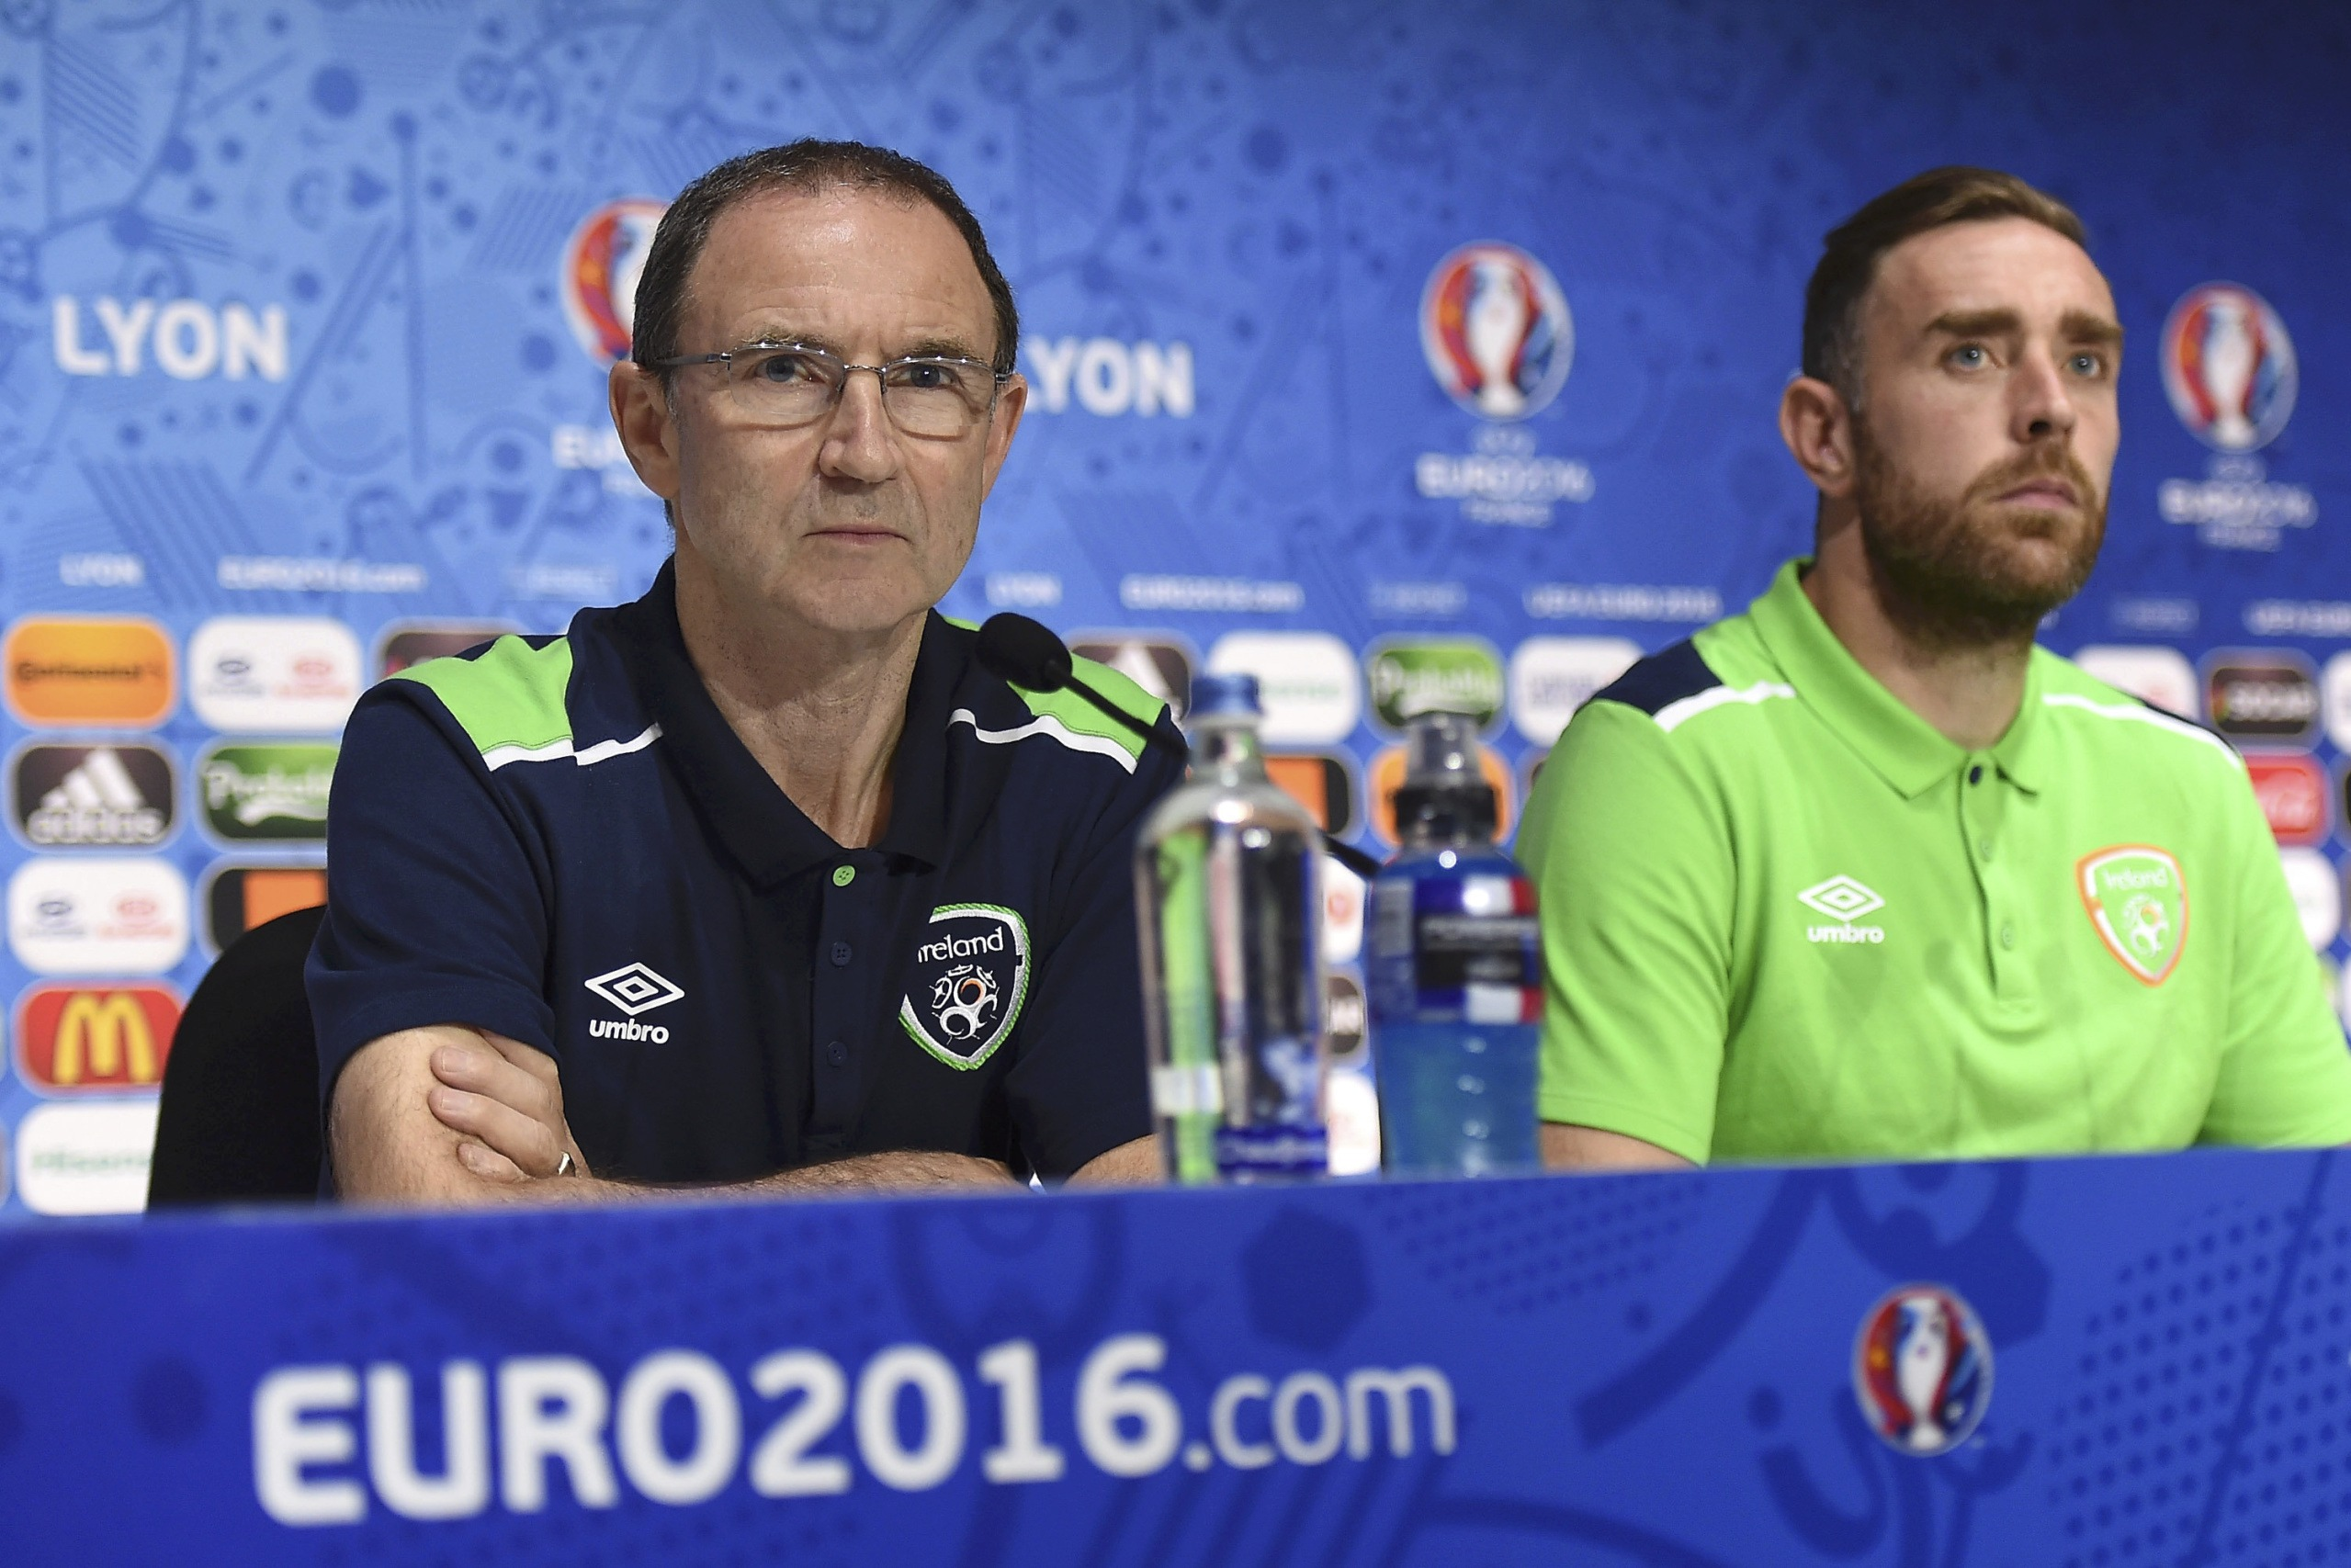 Euro 2016: We didn't deserve that kind of exit, says O'Neill